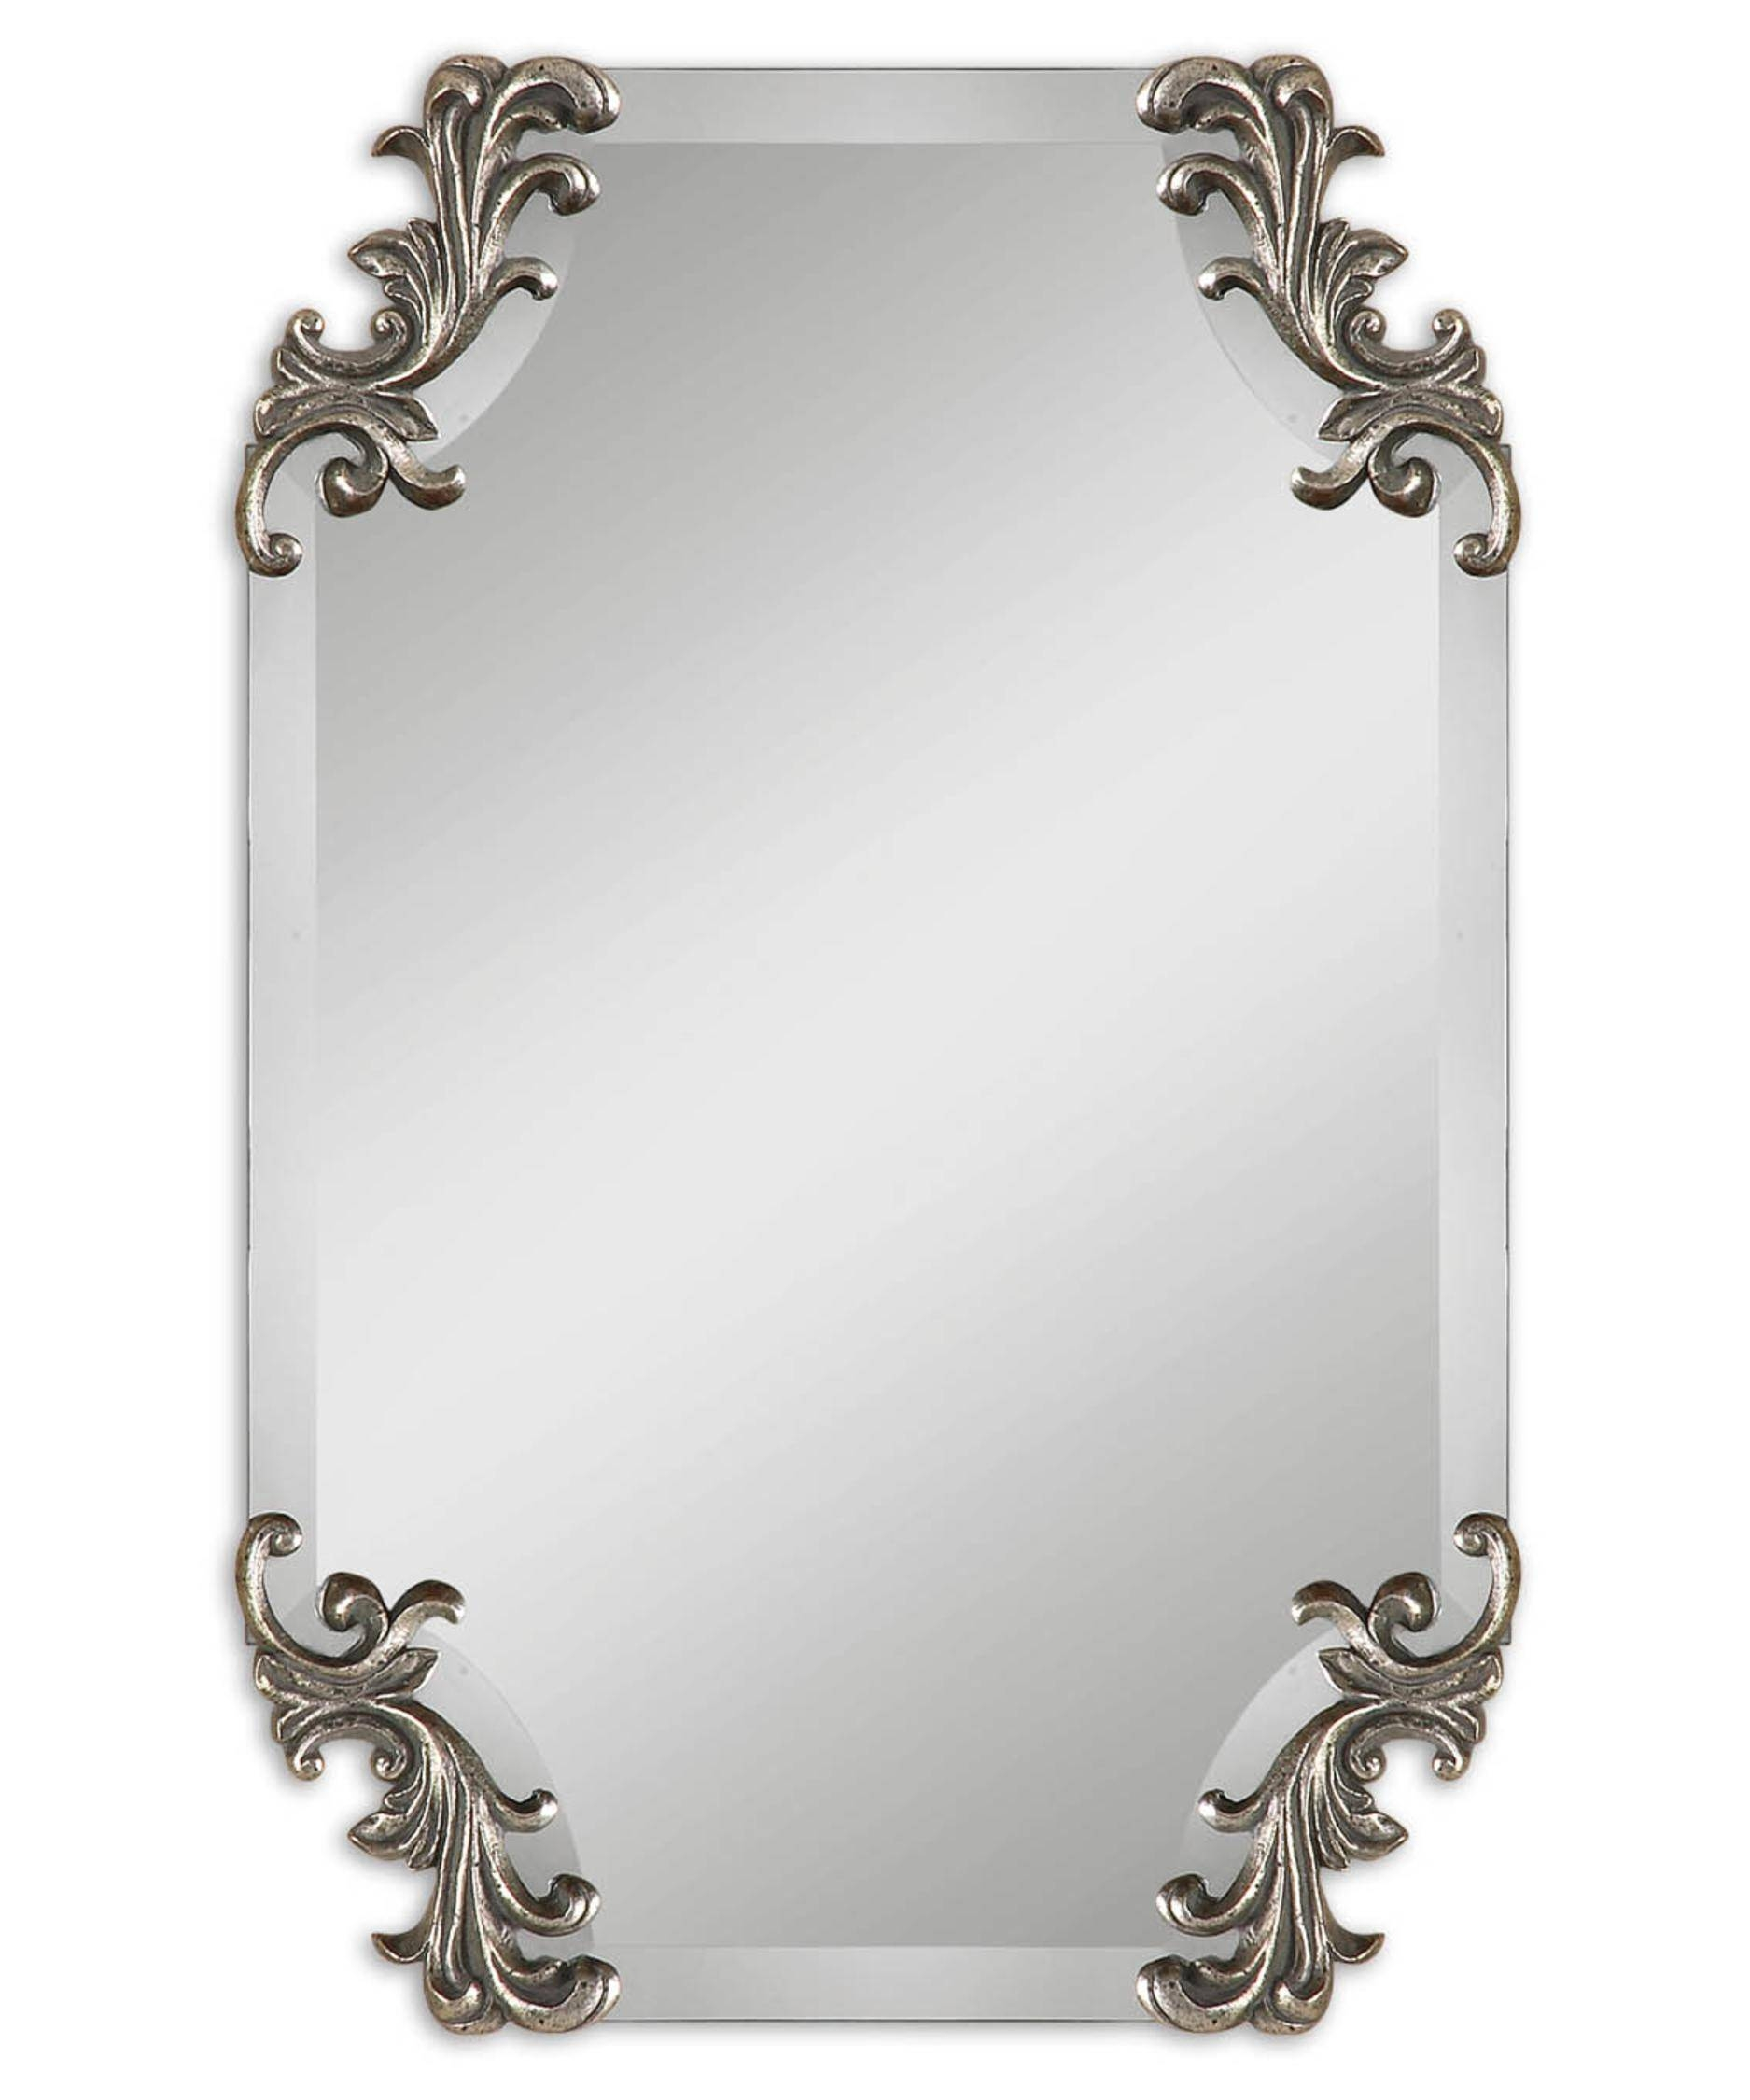 Uttermost Wall Mirrors Nanobuffet for Unusual Wall Mirrors (Image 23 of 25)